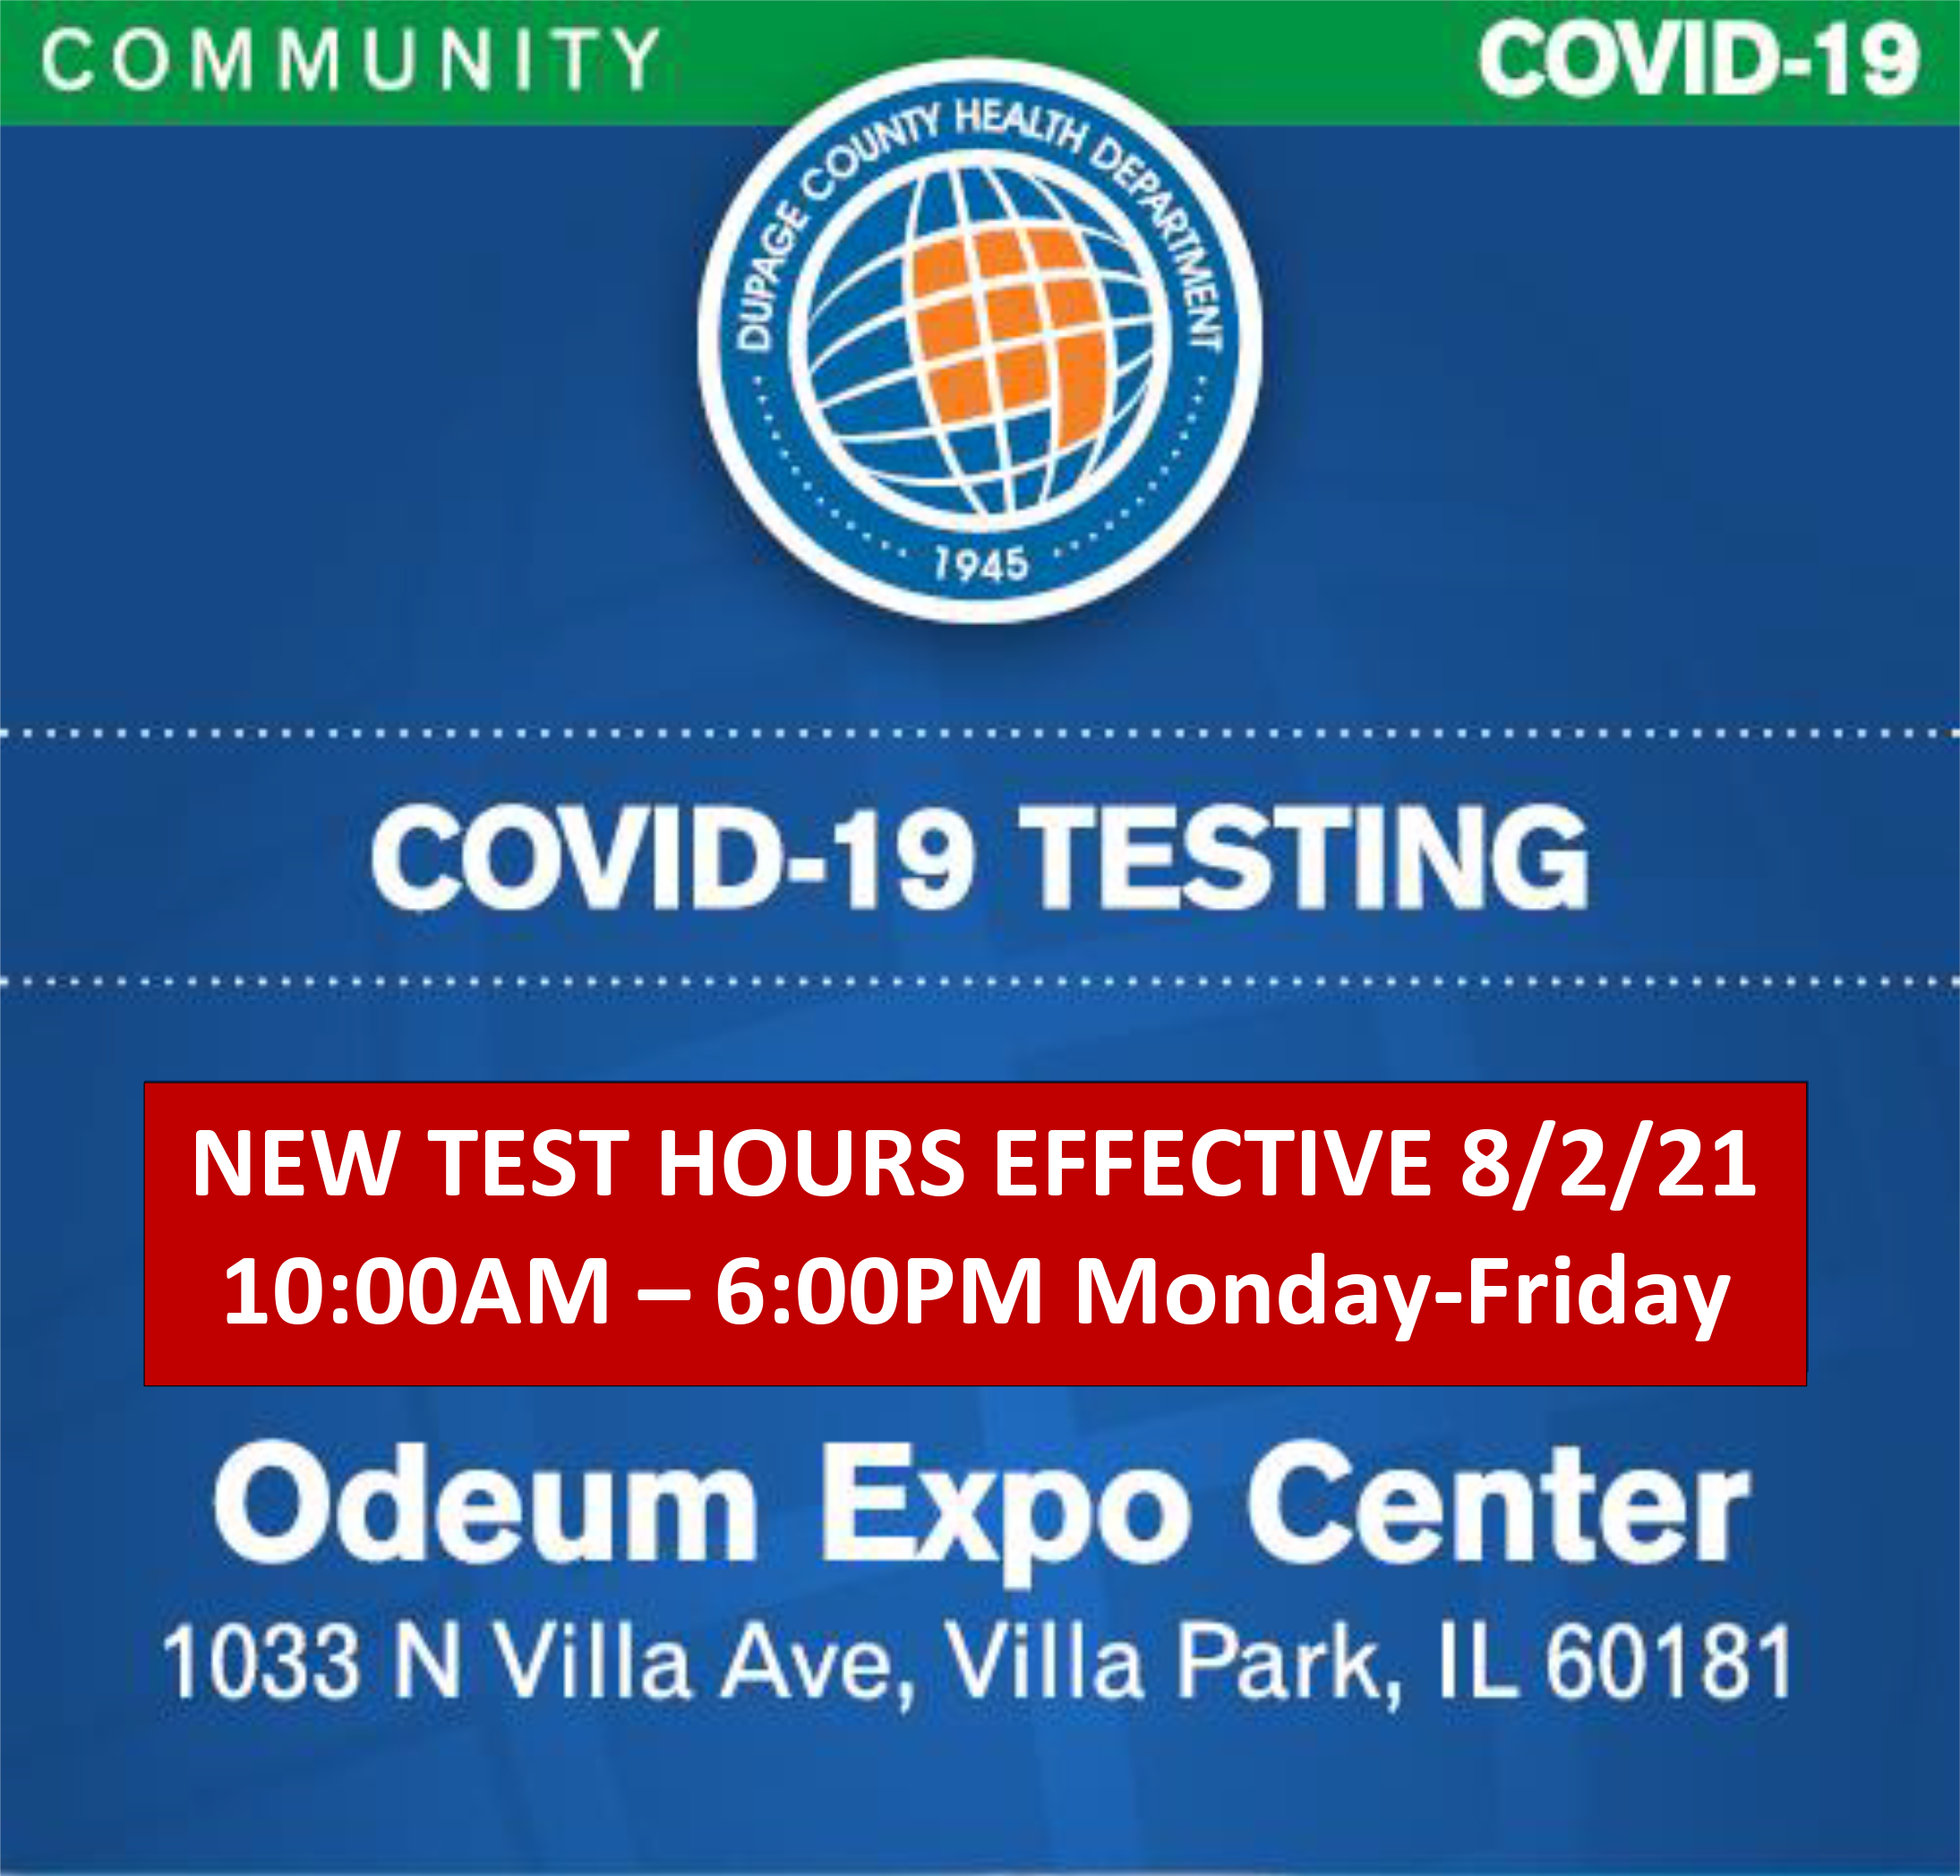 Graphic of New Drive-Thru COVID Testing hours at the Odeum Expo Center in Villa Park, Illinois, effective August 2, 2021